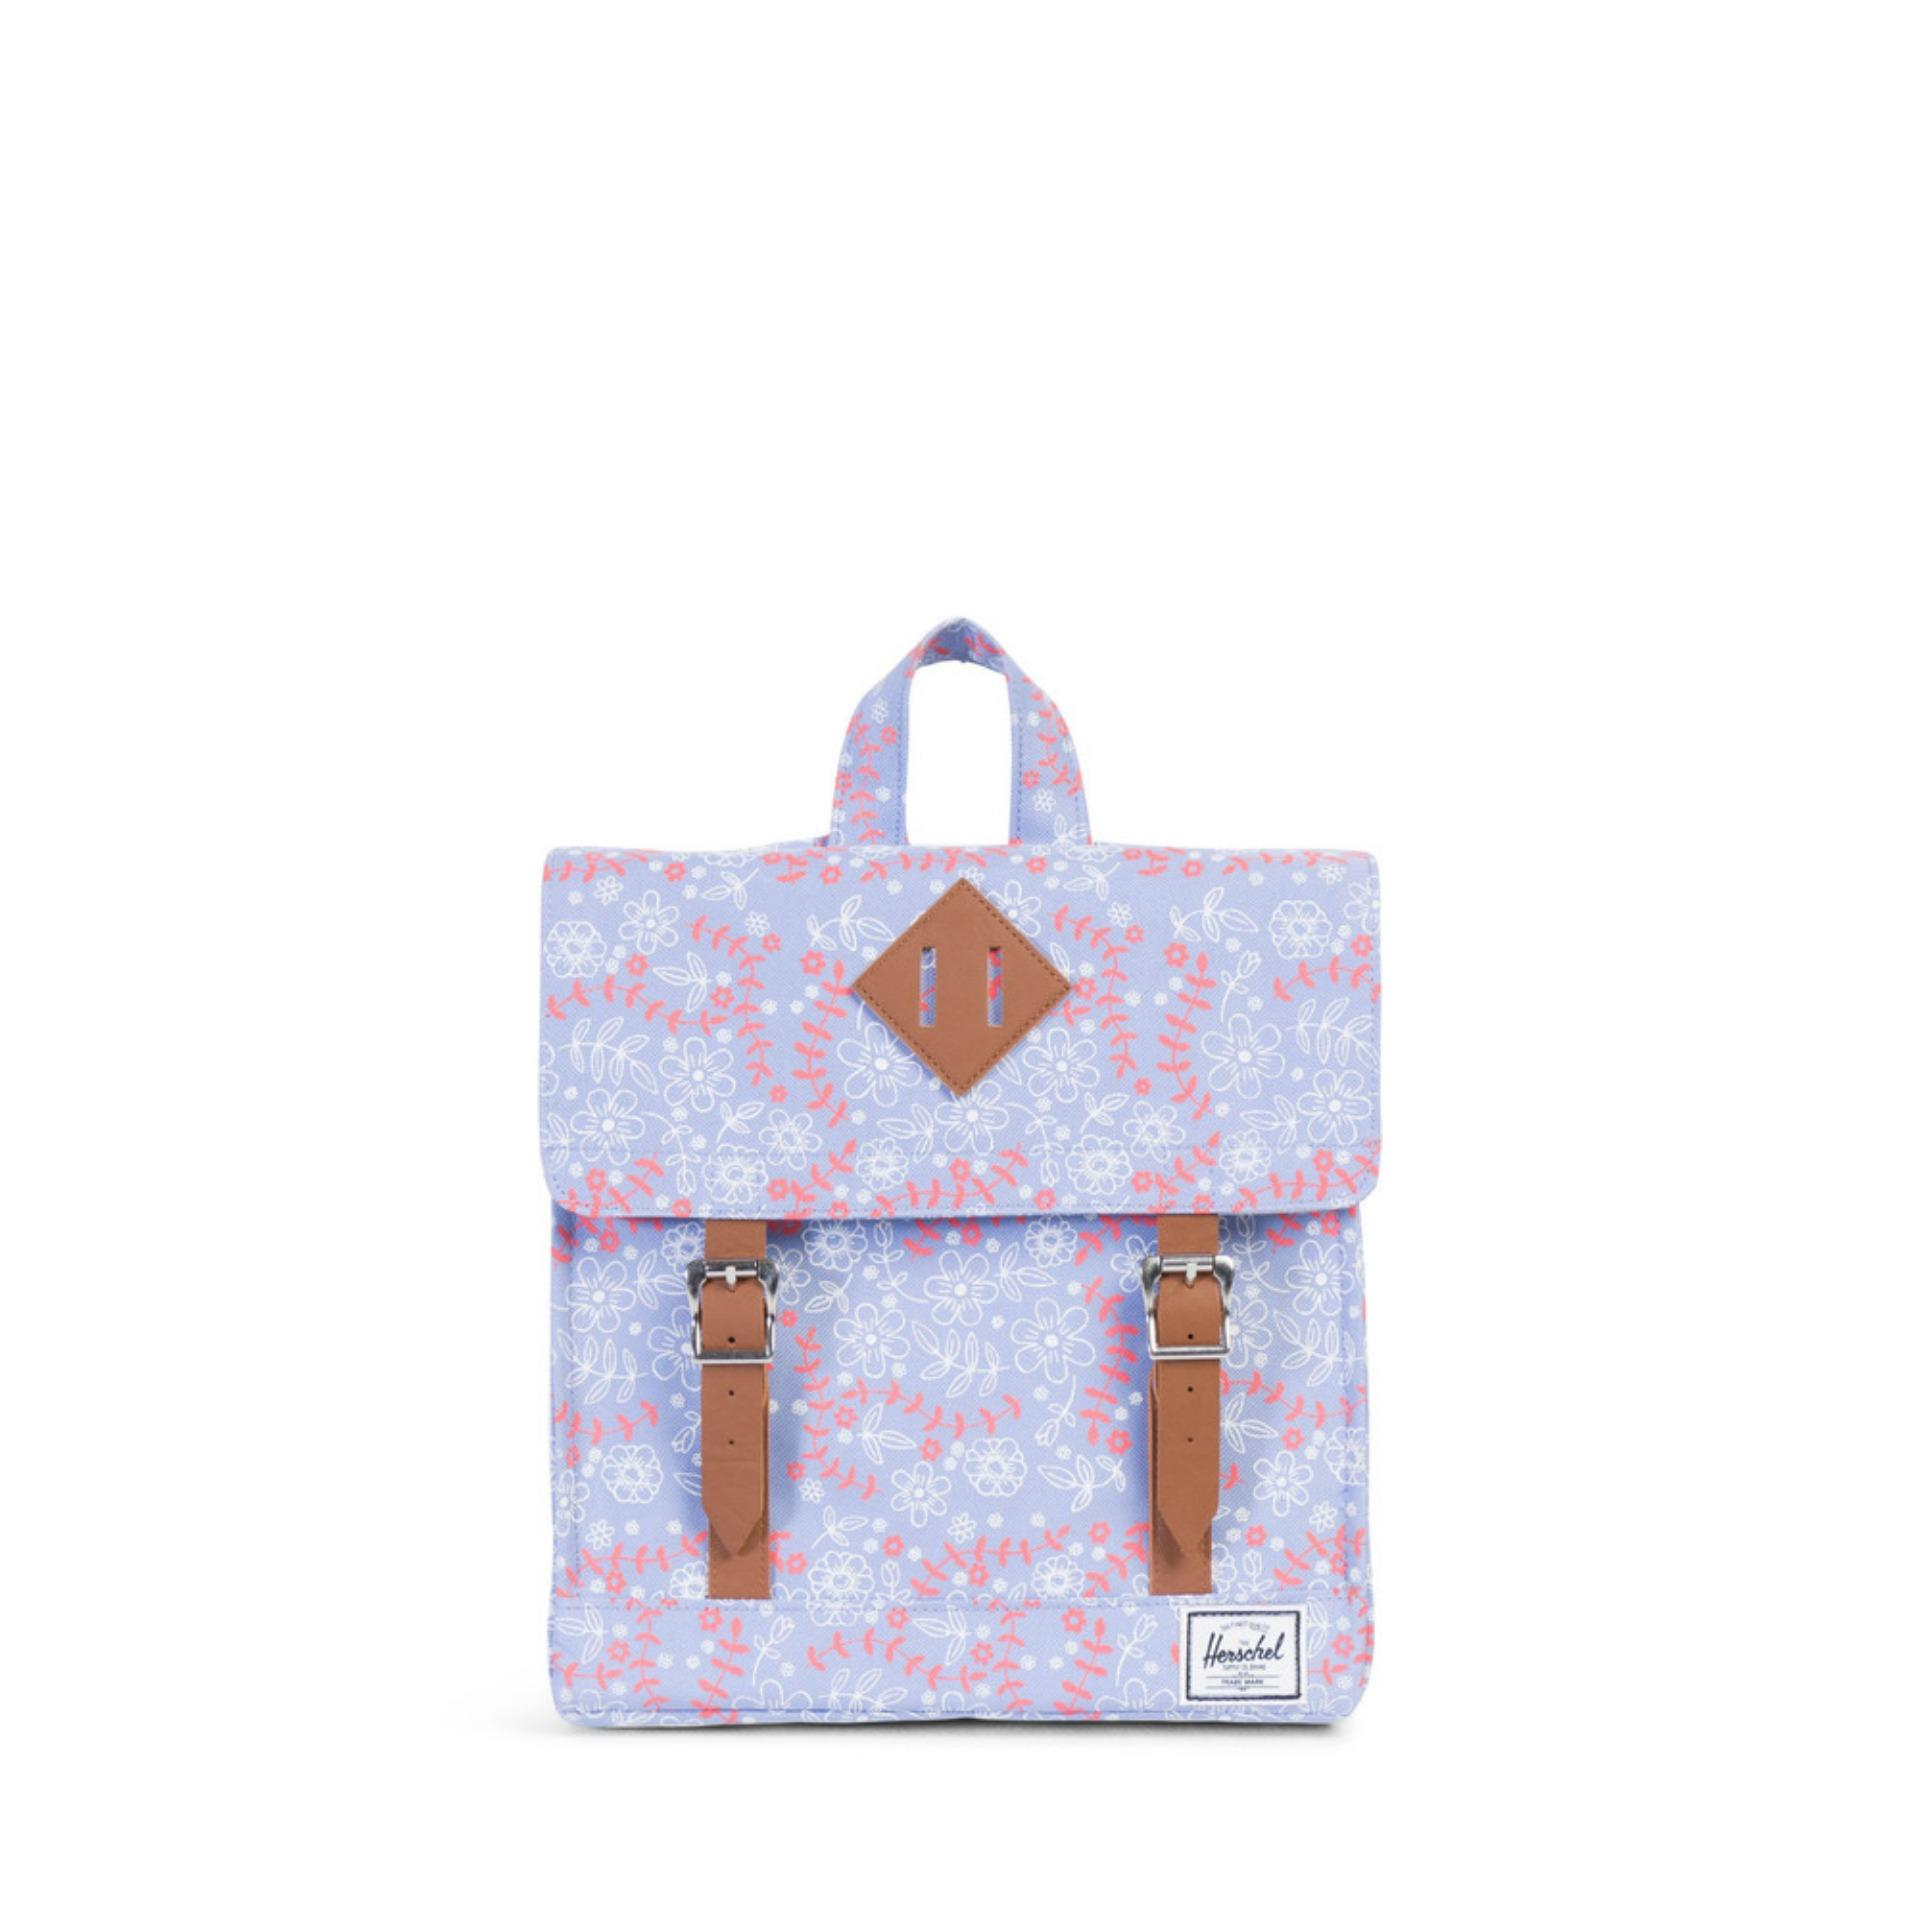 HERSCHEL SURVEY KID - Meadow/Tan Synthetic Leather